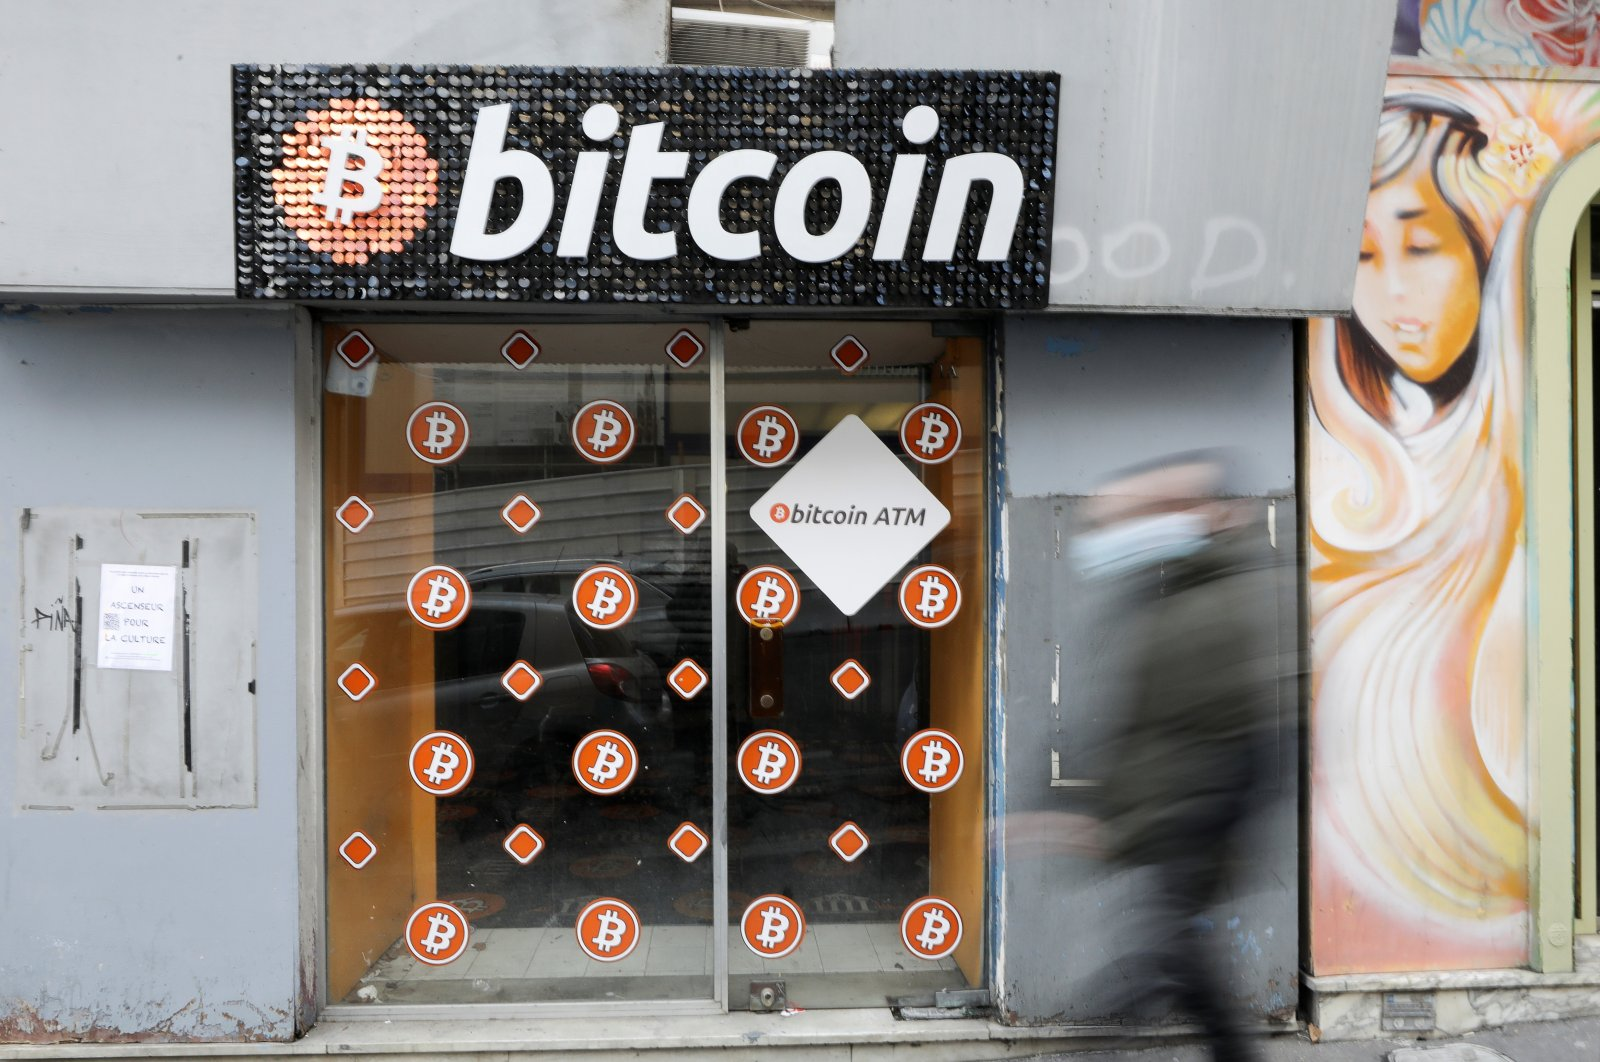 A man wearing a protective mask walks past a Bitcoin digital currency ATM shop in Marseille, France, Feb. 7, 2021. (Reuters Photo)